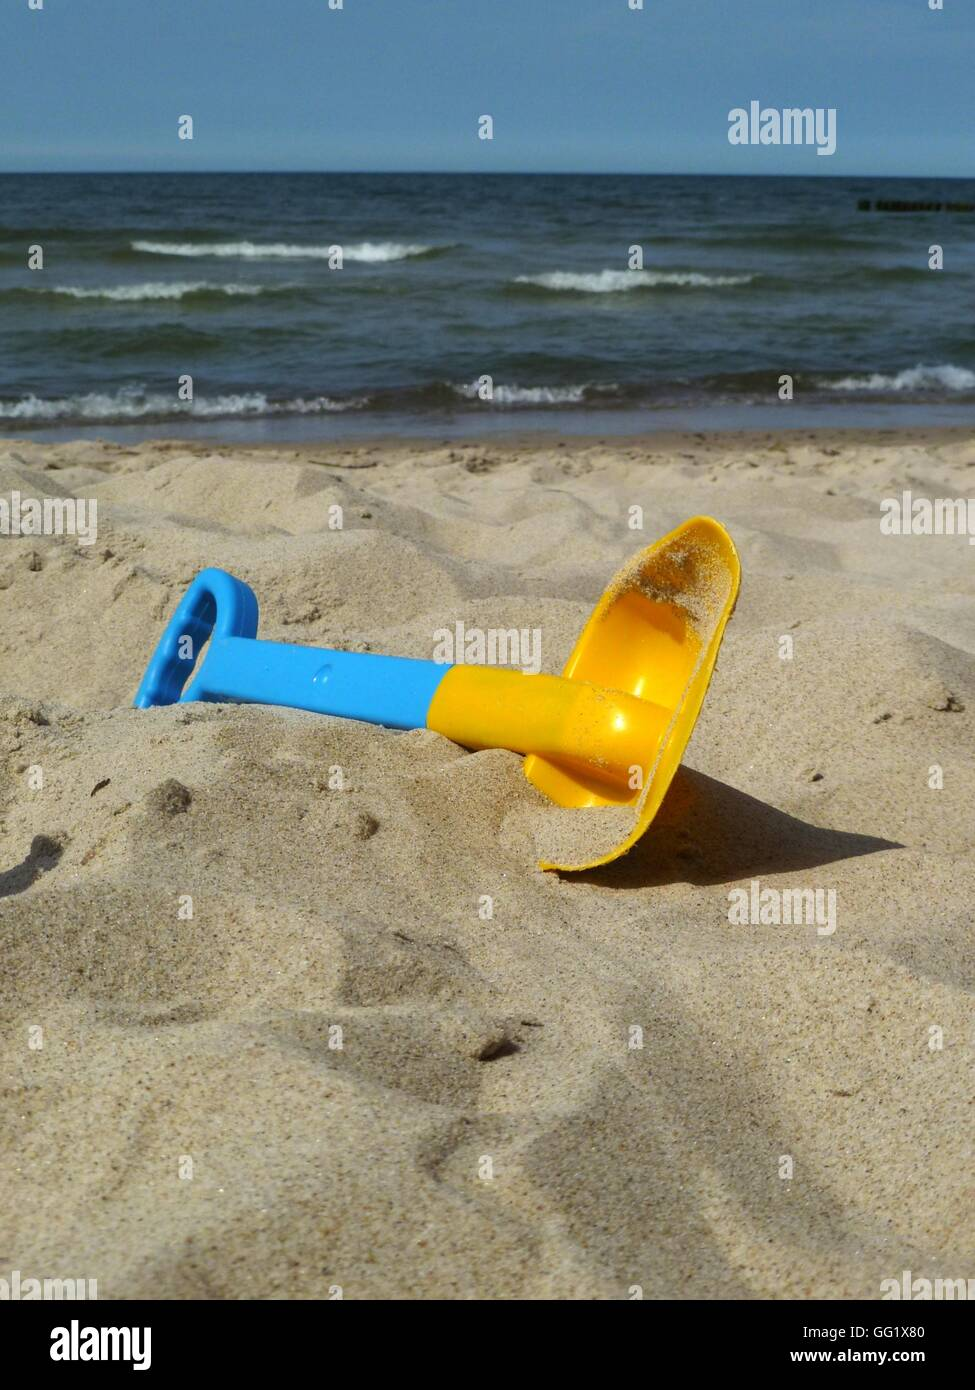 scoop the sand - Stock Image